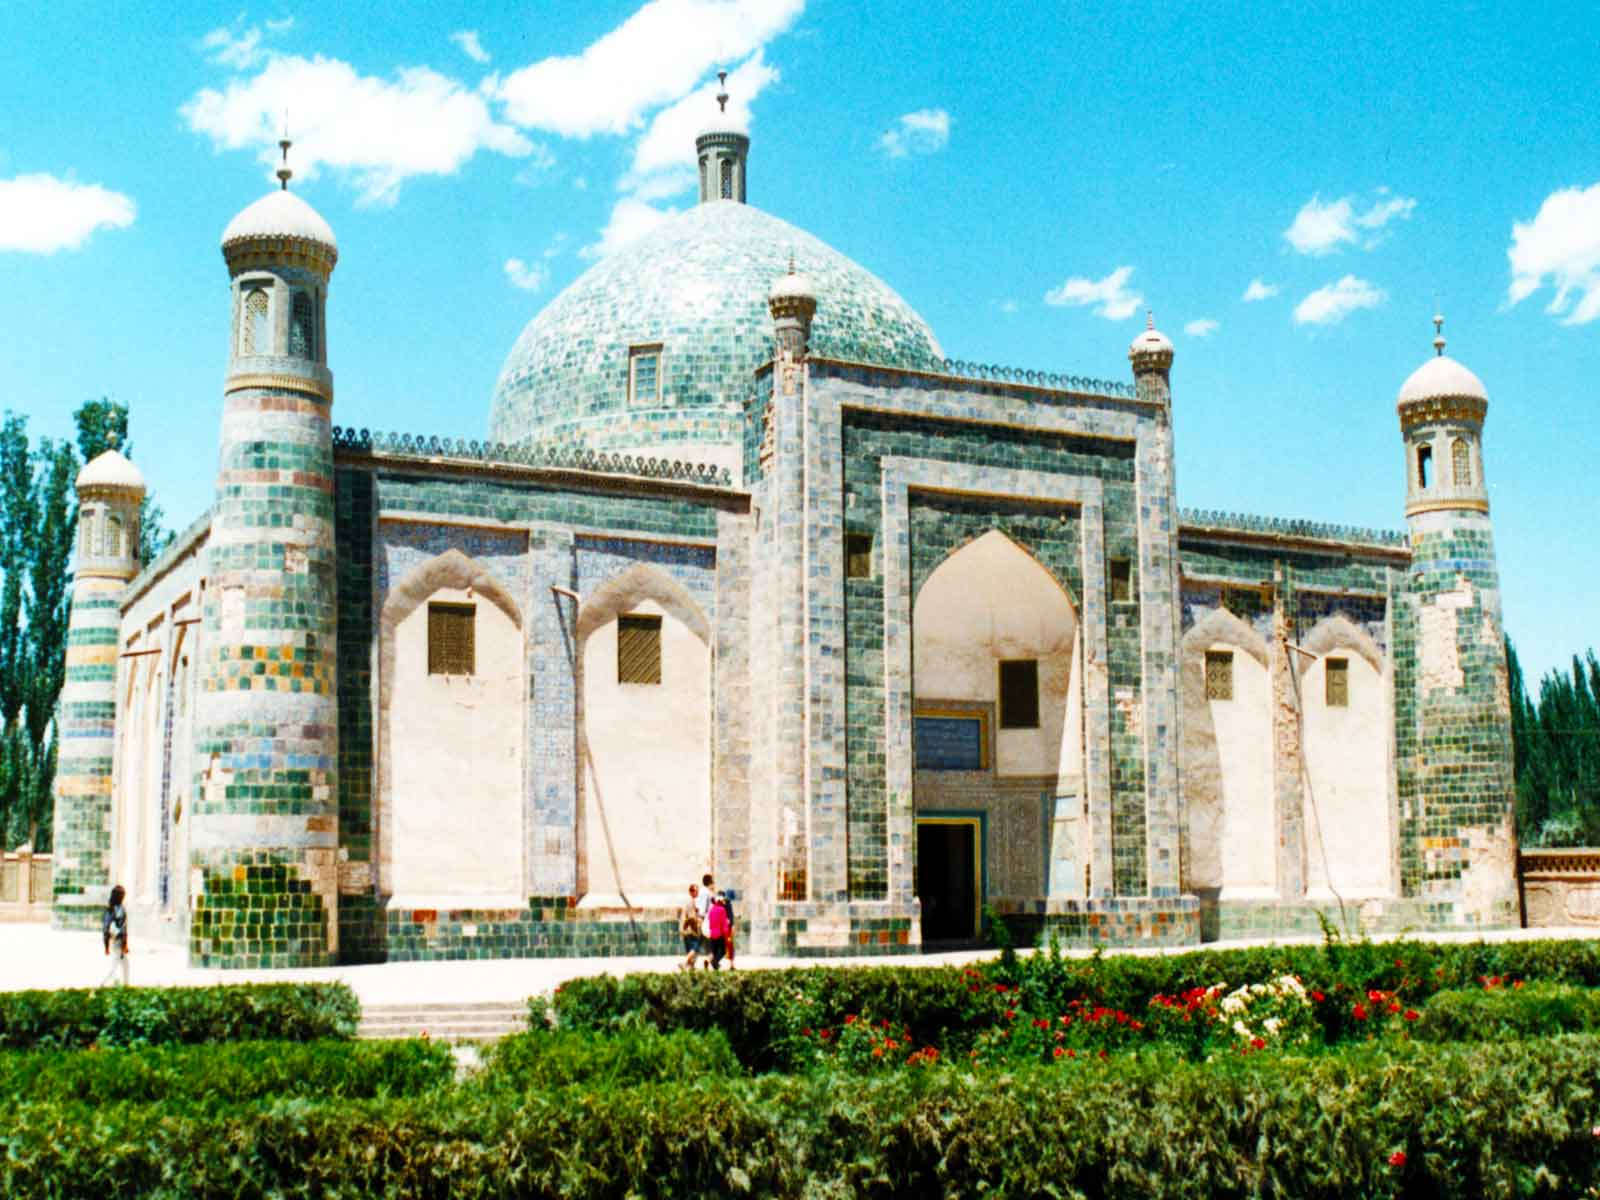 Afaq Khoja Mausoleum 1640 - Silk Road Photo Journal - University of Hawaii China Study Tour - Steven Andrew Martin